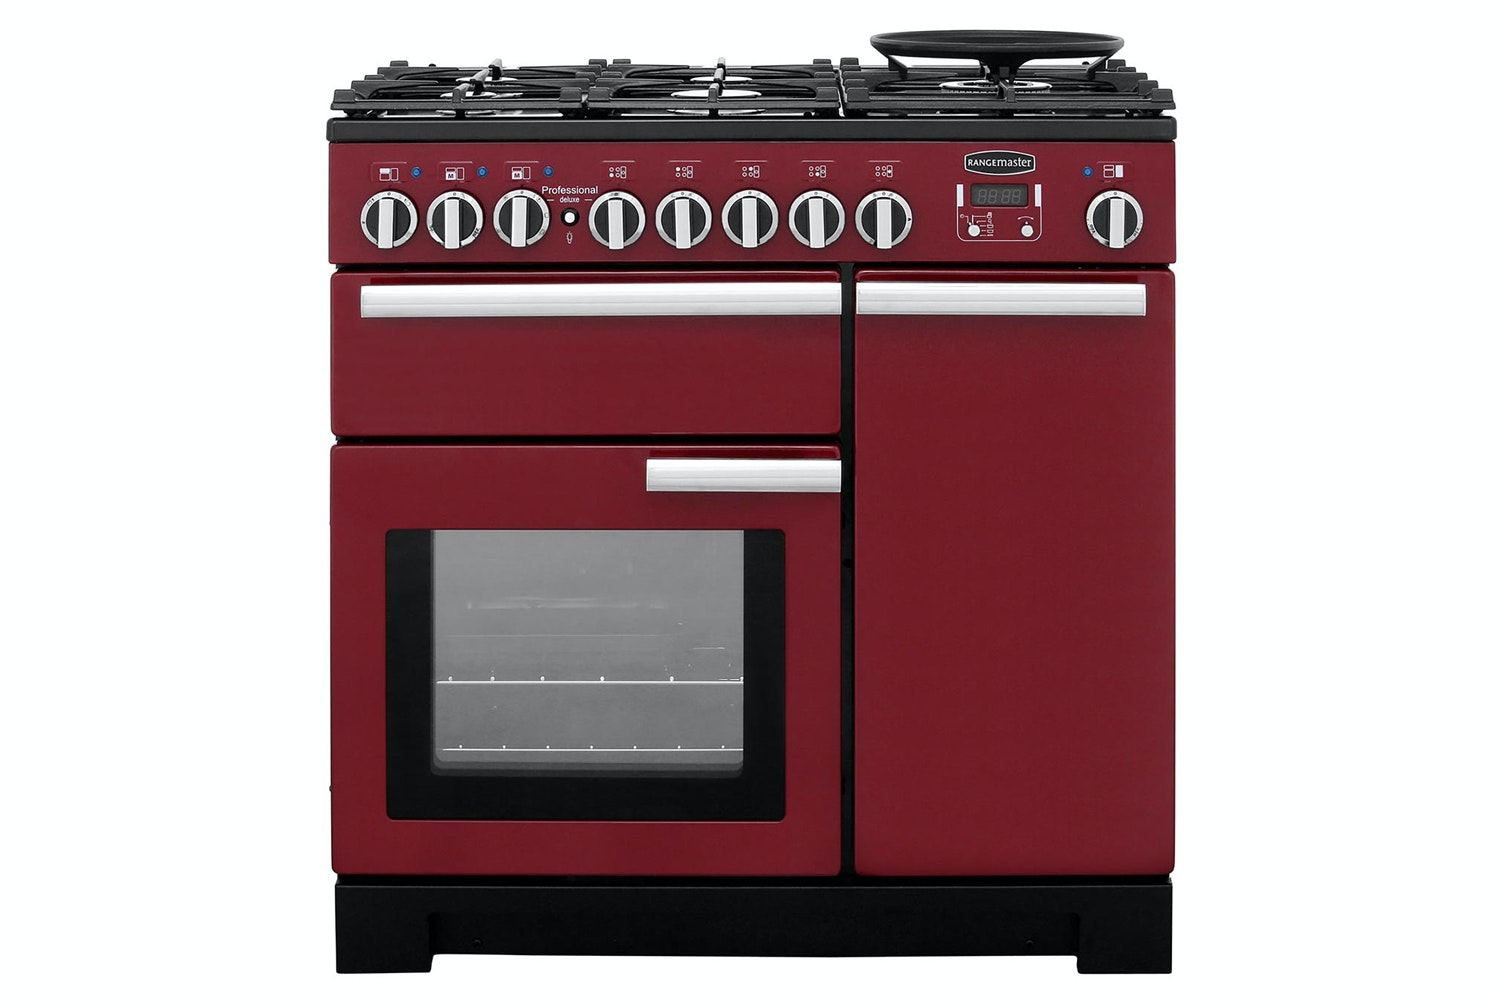 Rangemaster Professional Deluxe 90cm Dual Fuel Range Cooker | PDL90DFFCY/C | Cranberry